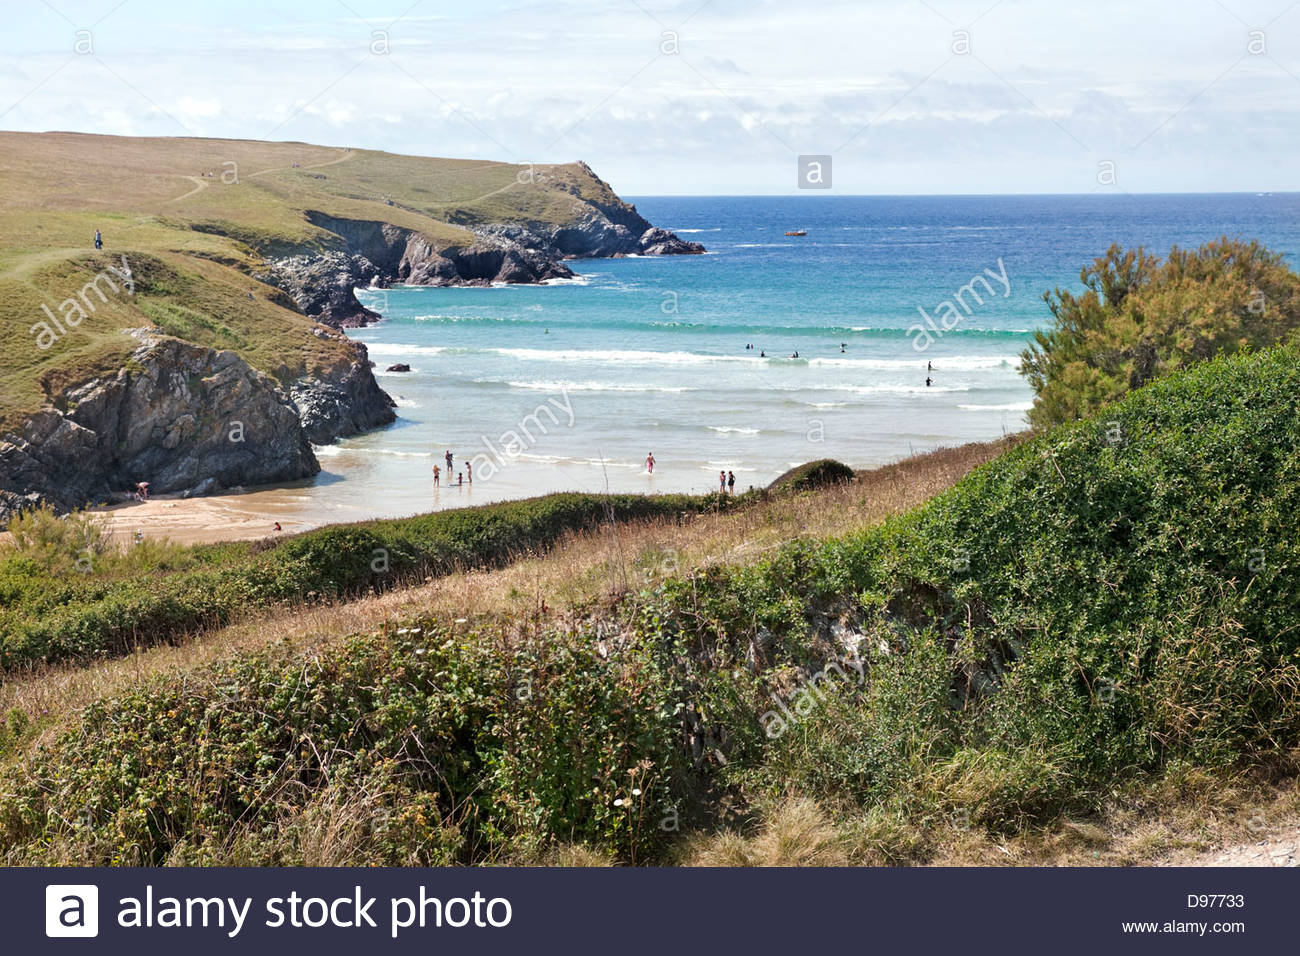 View to Polly Joke or Porth Joke Beach, Newquay, Cornwall, England - Stock Image